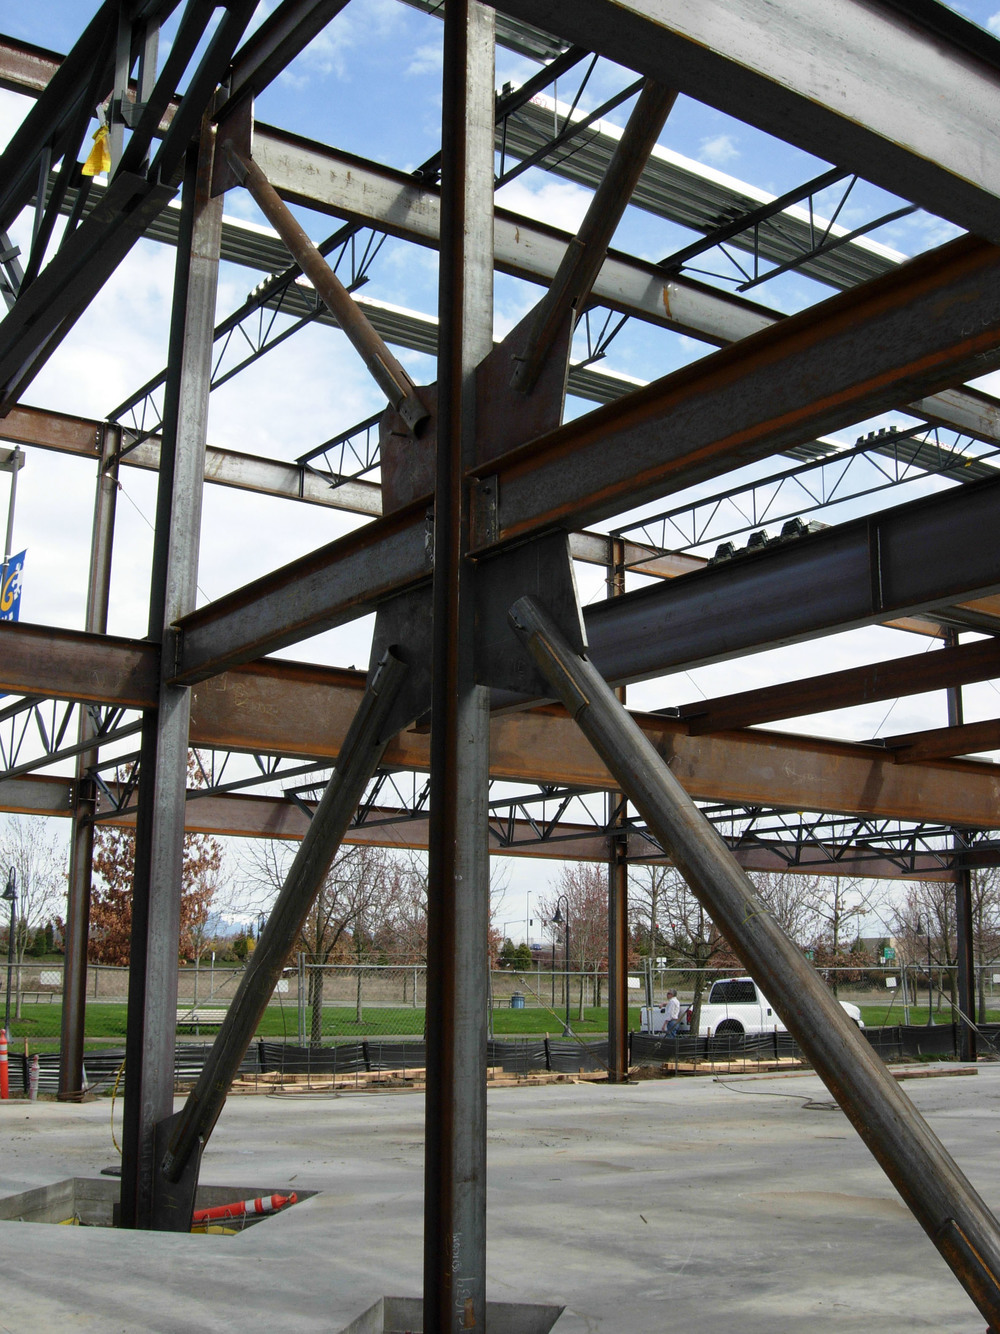 cascade-station-2-office-rf-stearns-structural-steel-construction-4.JPG